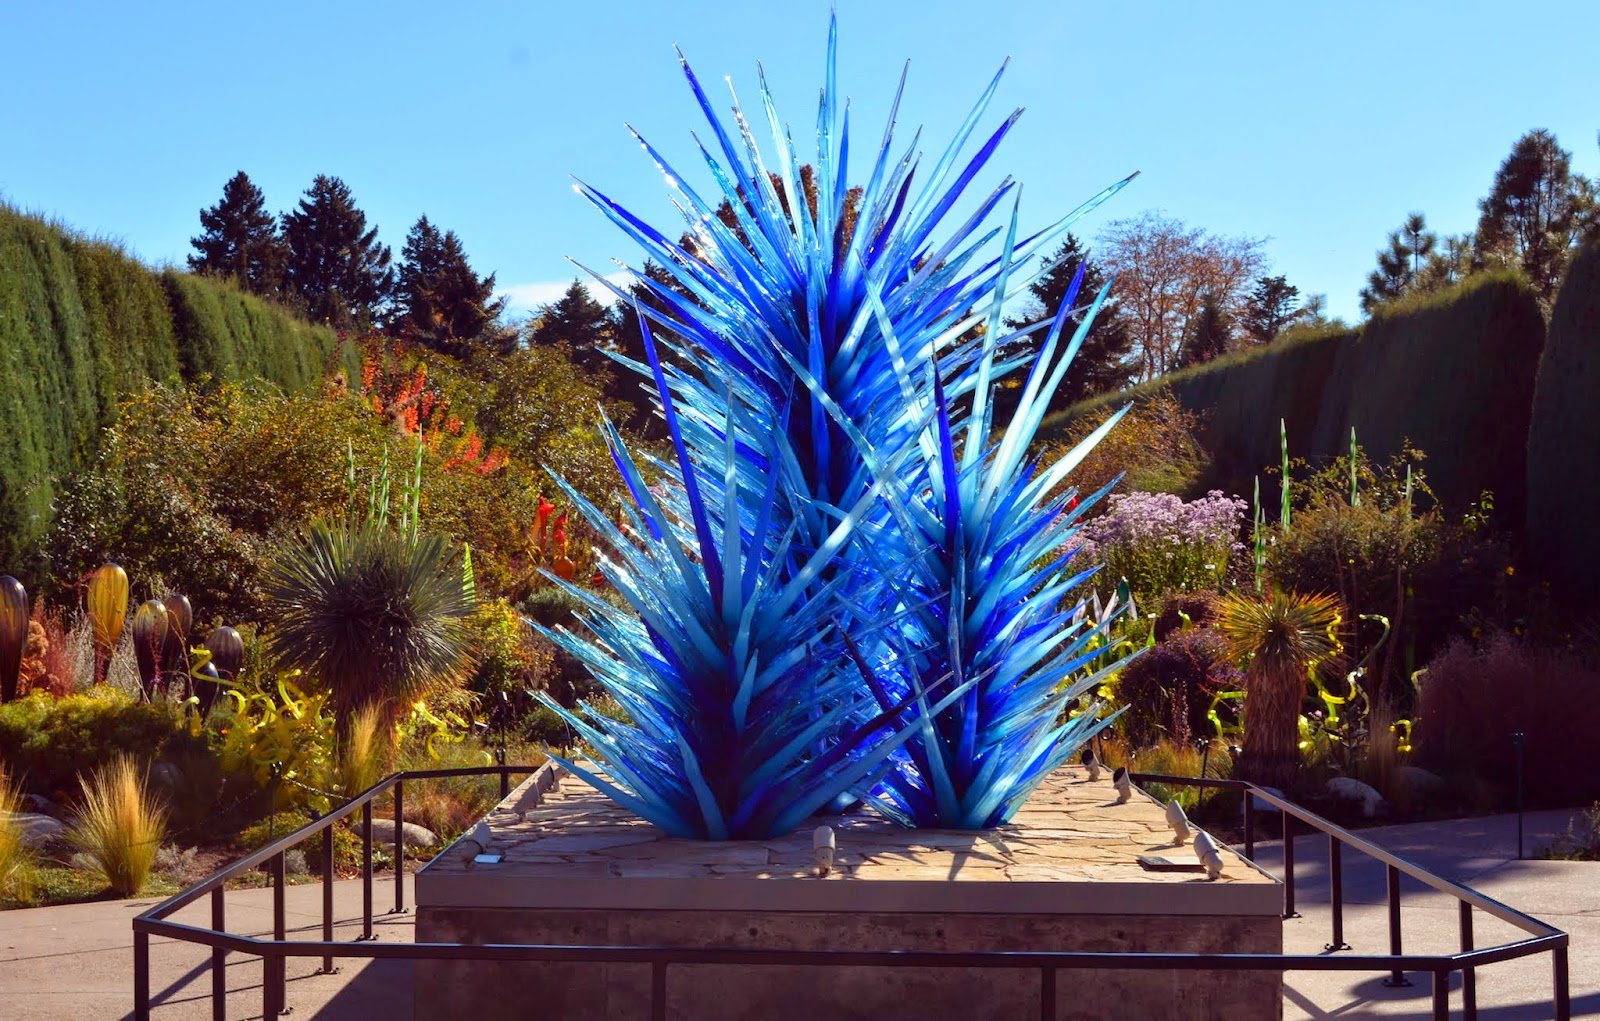 Mille Fiori Favoriti Chihuly Exhibit At The Denver Botanic Garden